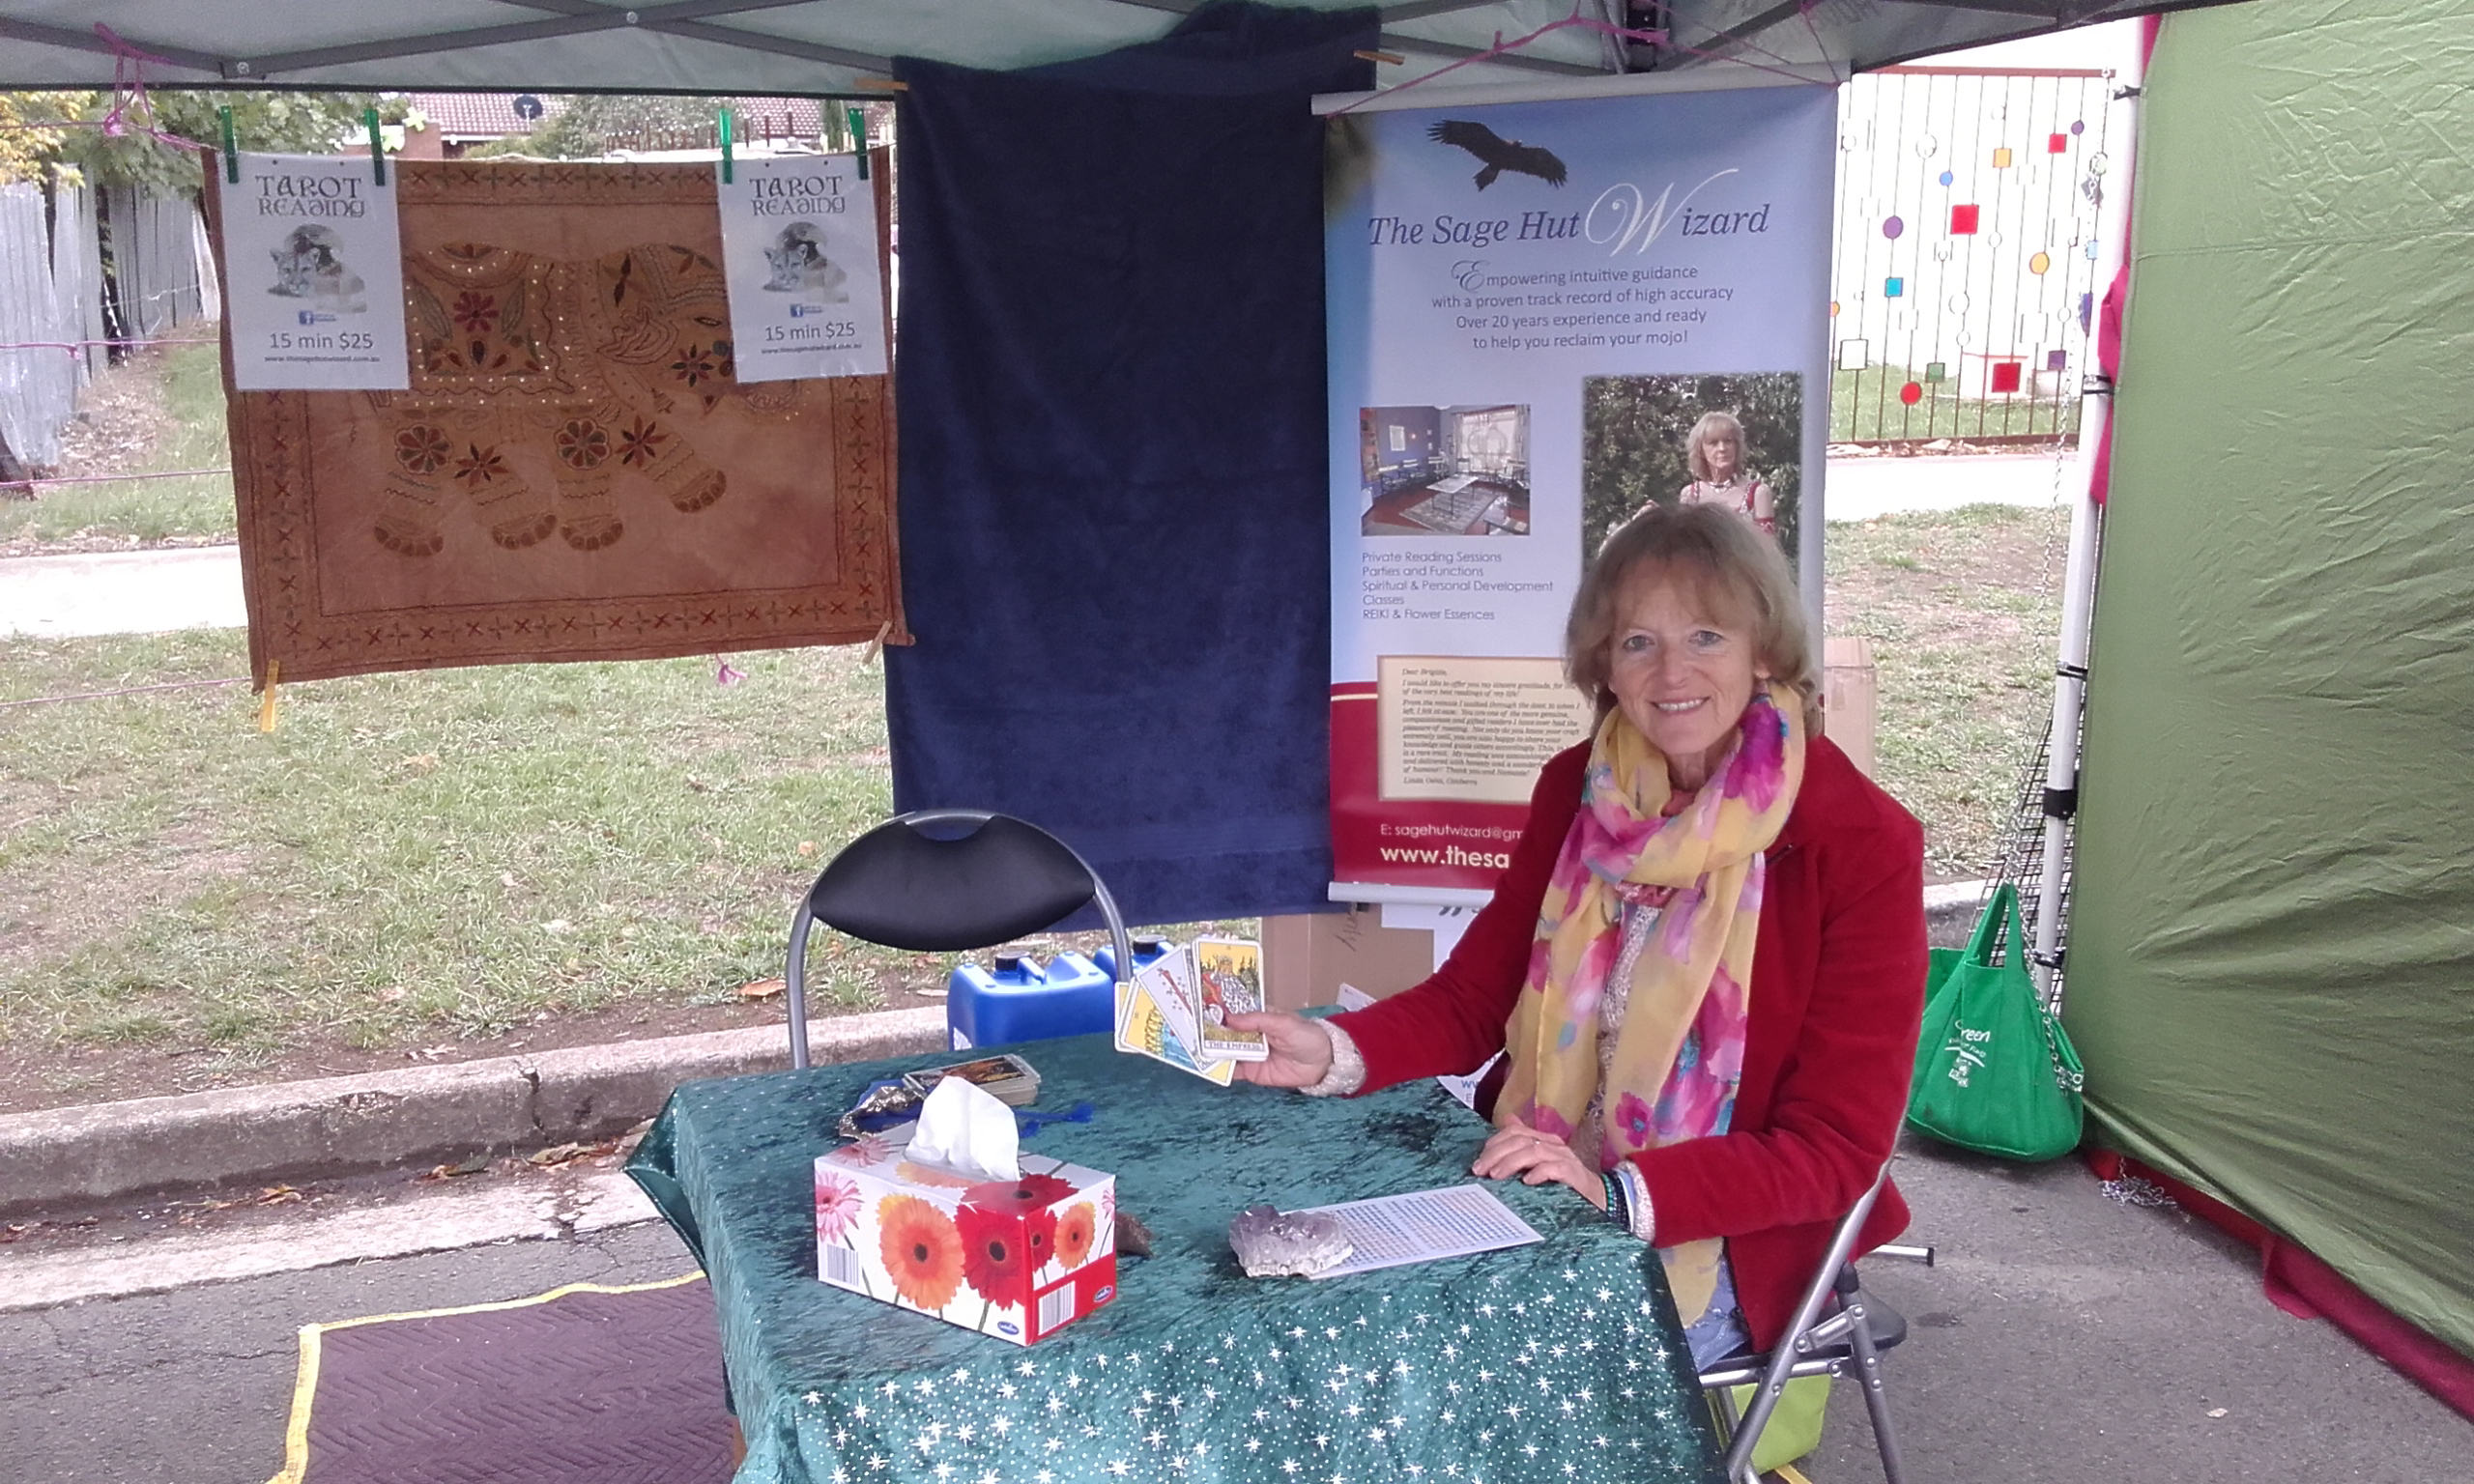 The Sage Hut Wizard stall at Ballan Autumn Festival